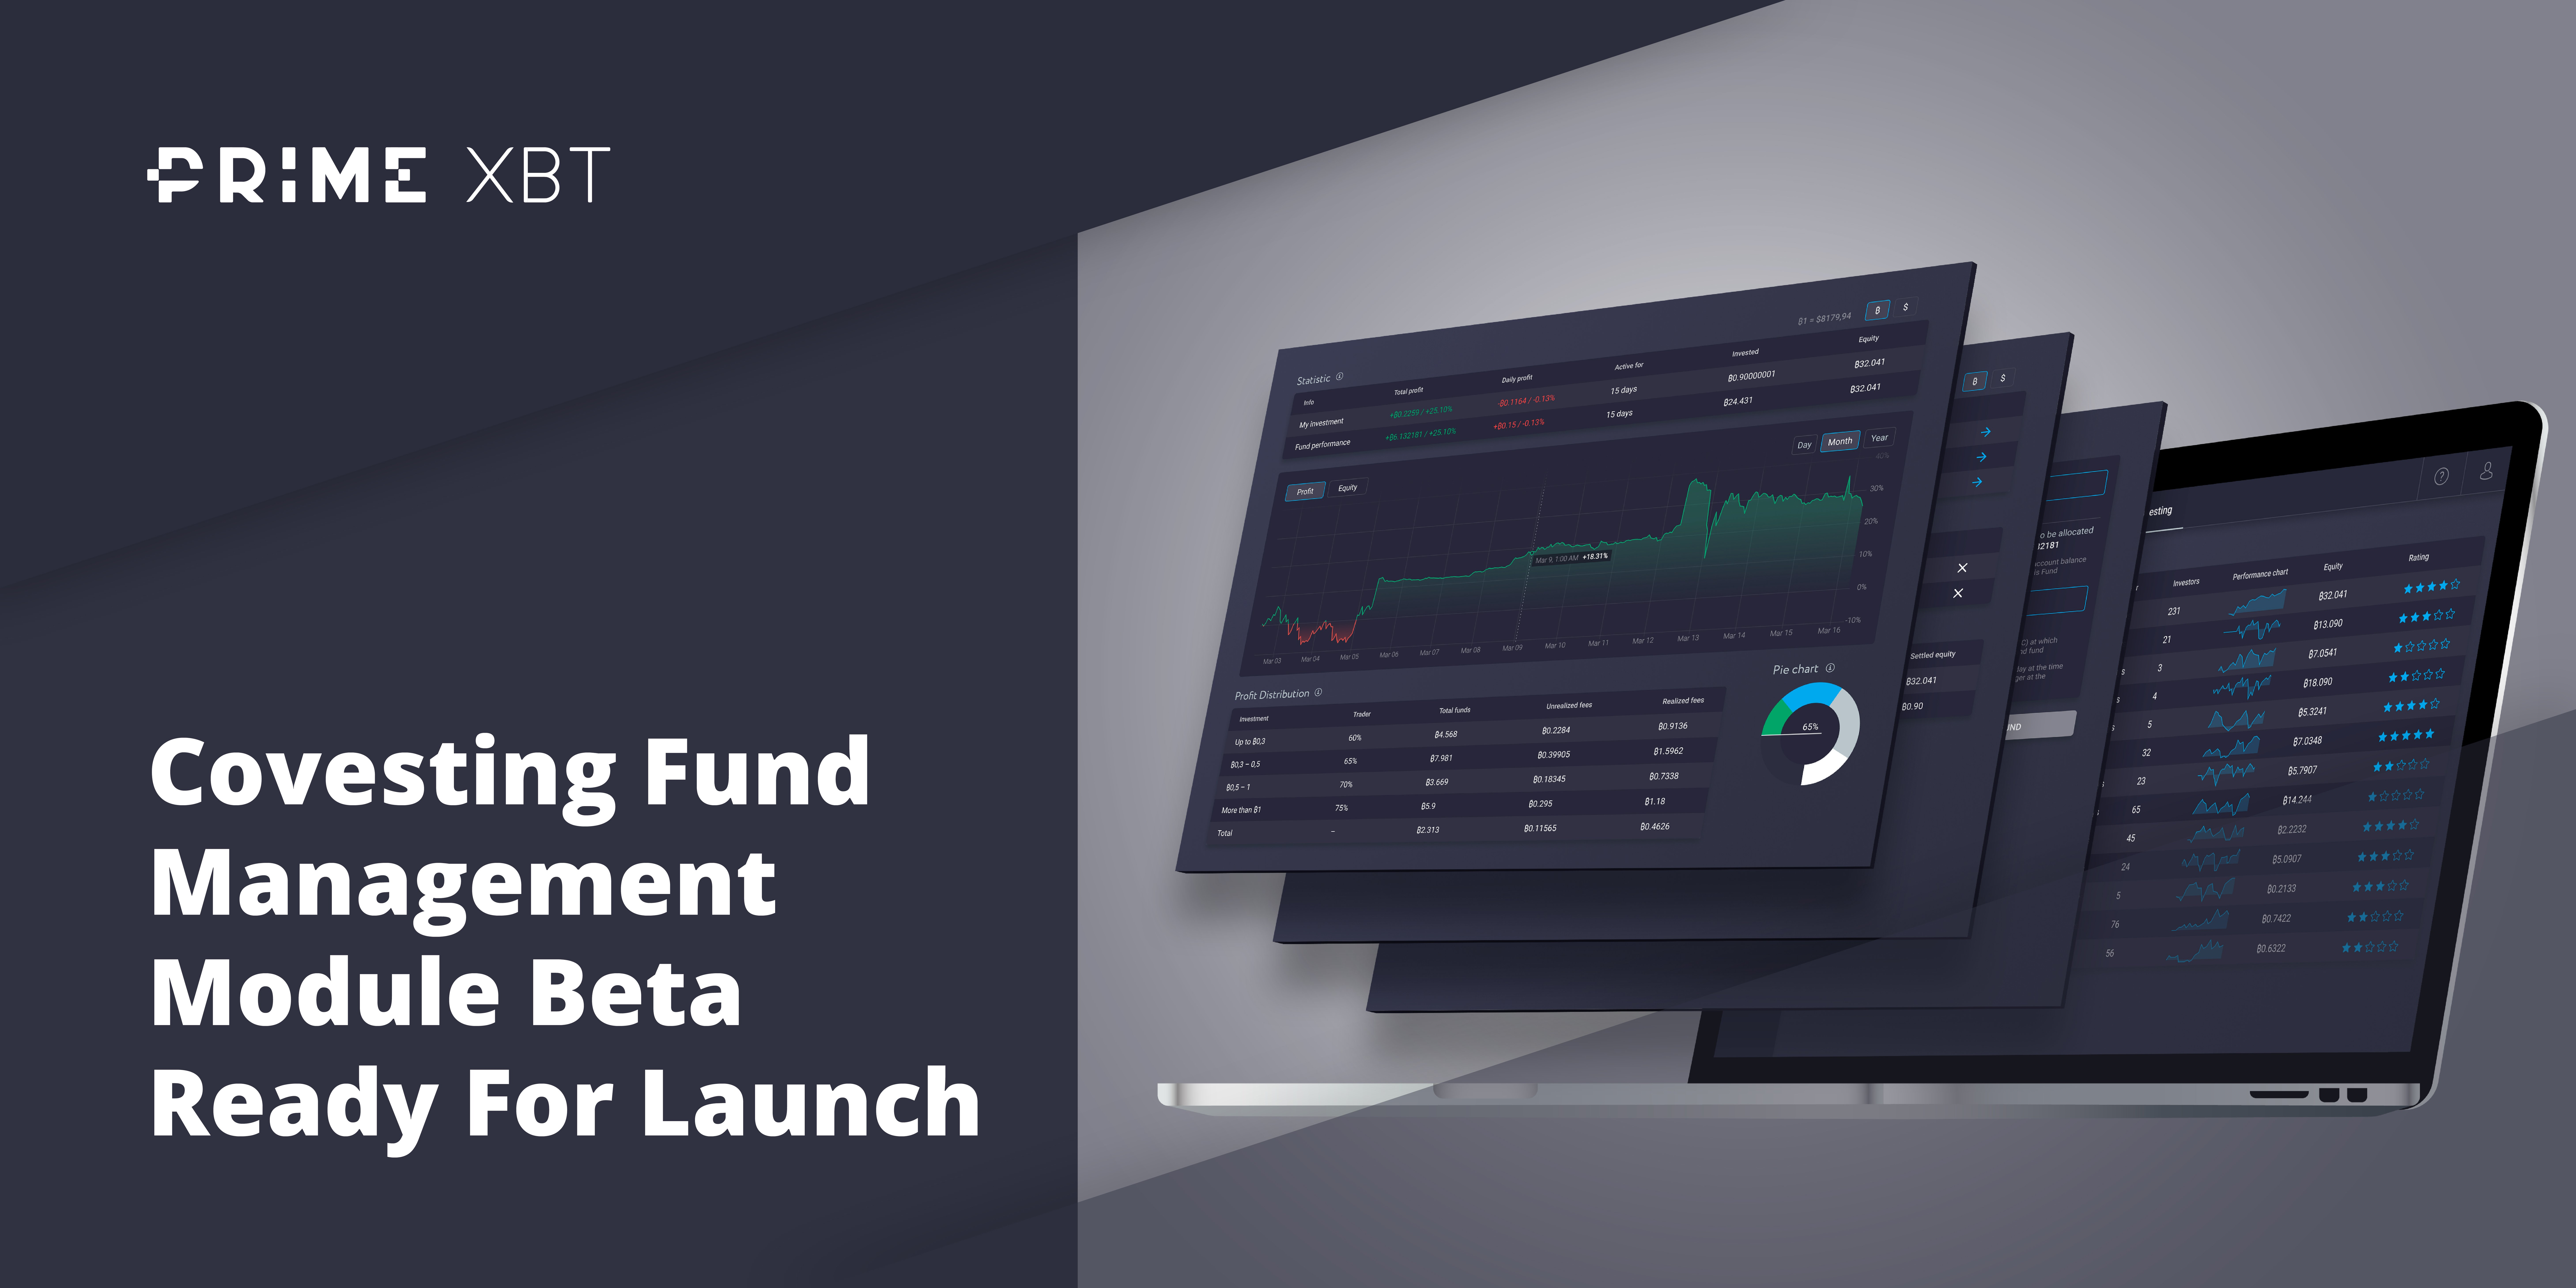 Covesting Fund Management Module Beta Ready For Launch, Here's How It Works - 2020 03 20 20.01.45